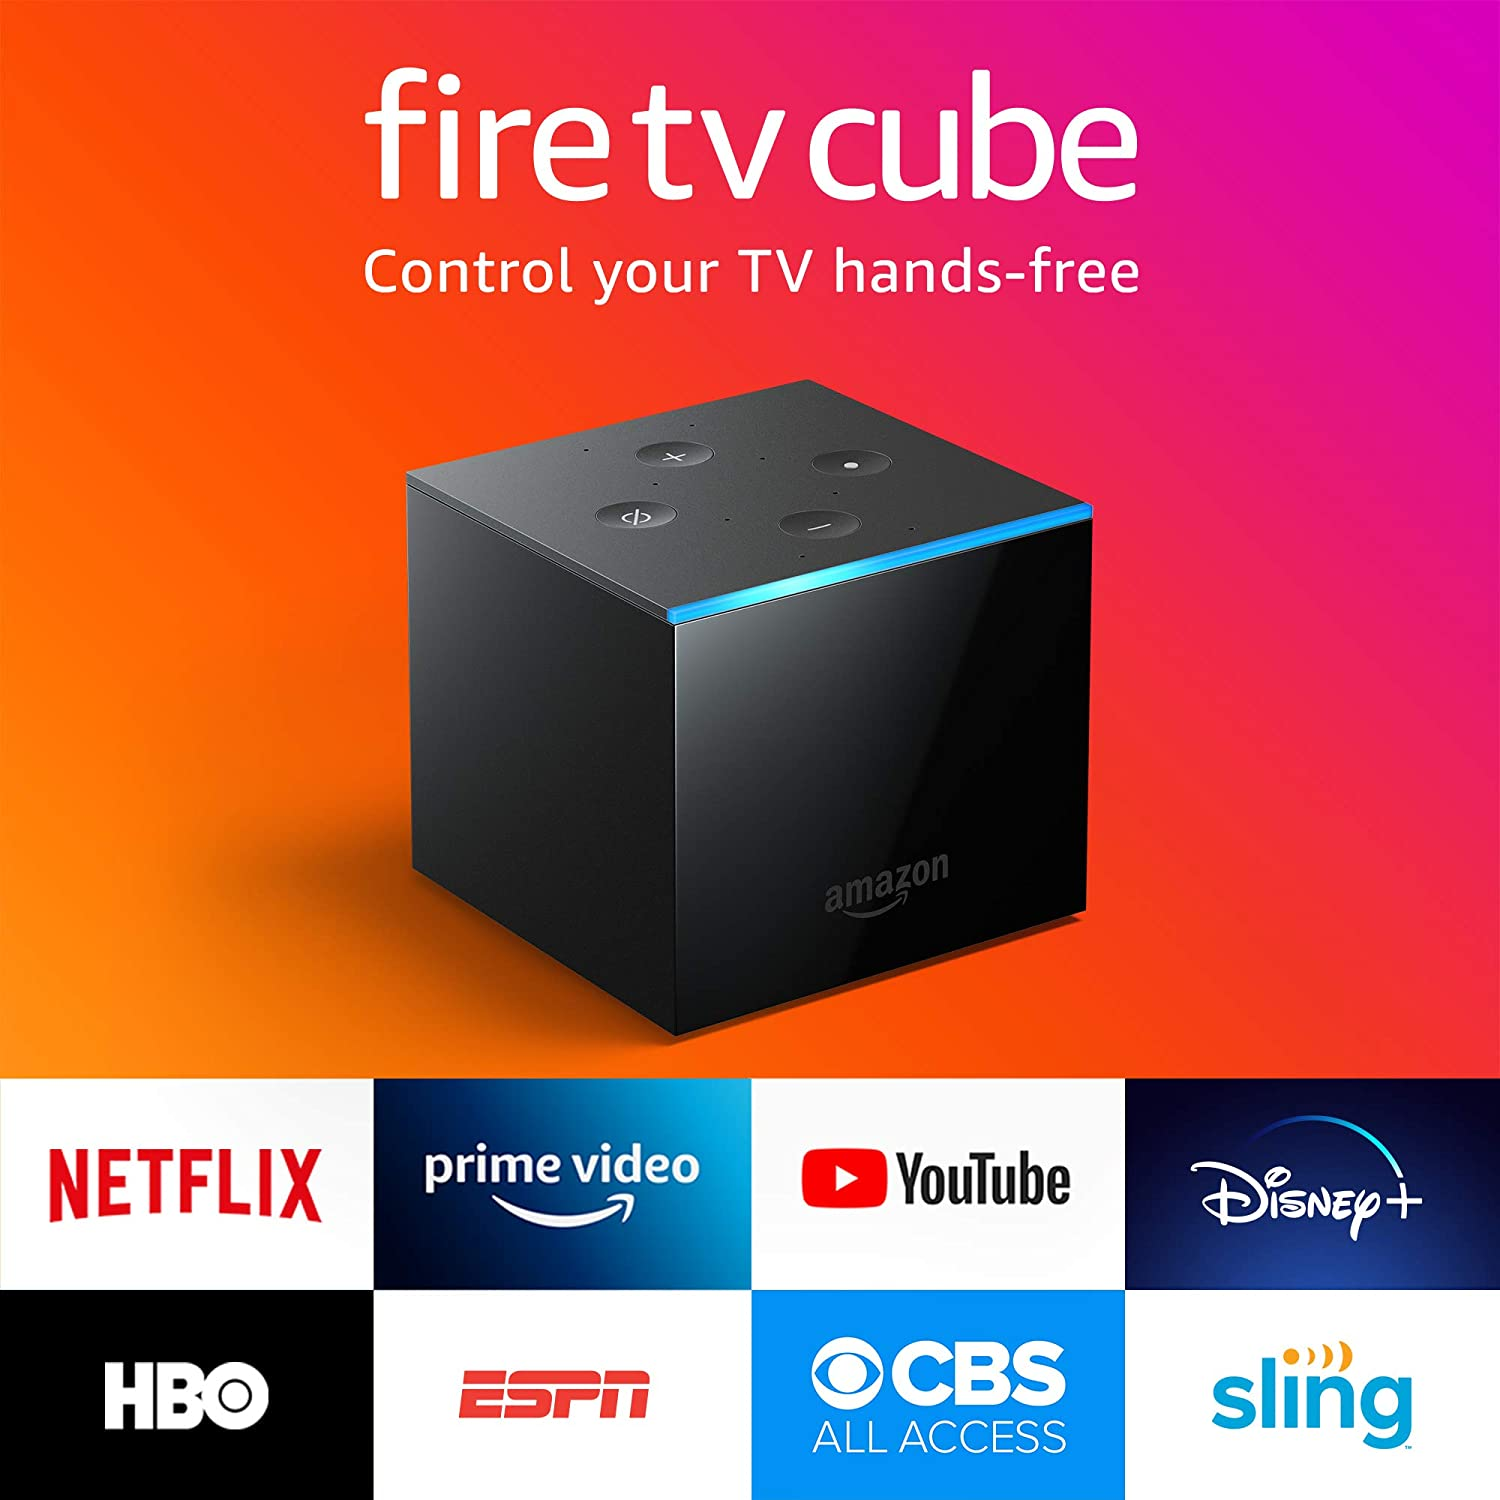 Fire TV Cube handsfree with Alexa built in 4K Ultra HD streaming media player released 2019